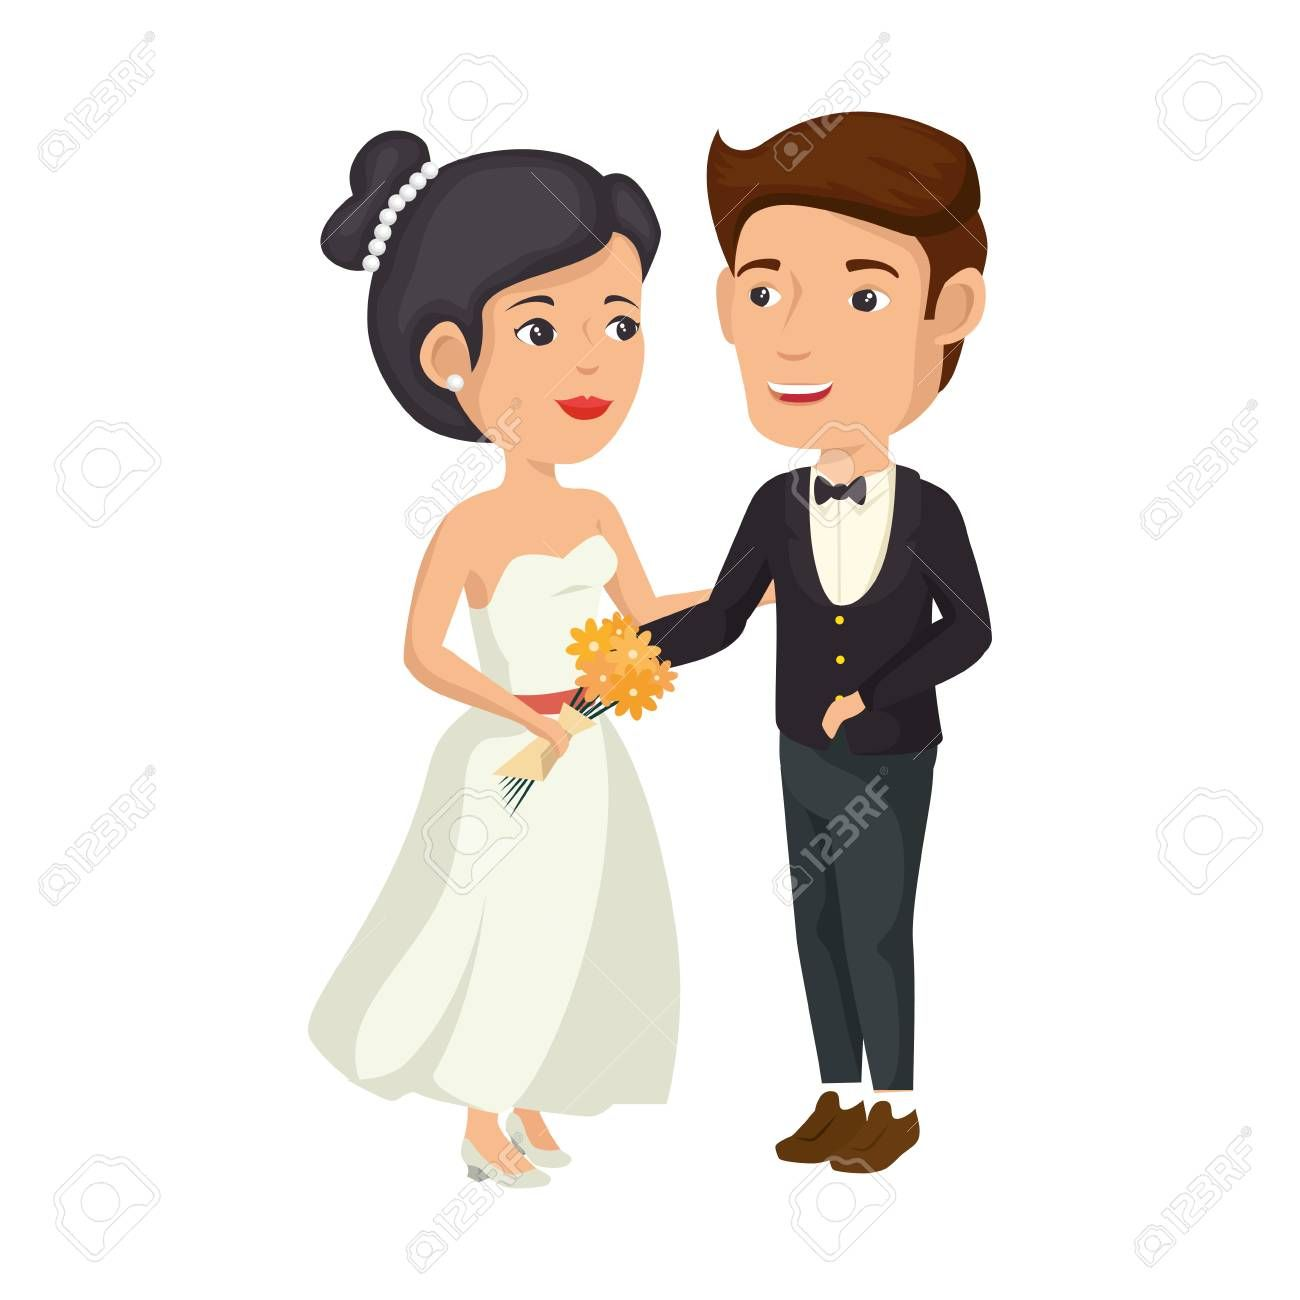 A Cartoon Happy Wedding Couple Icon Over White Background Vector Illustration Aff Wedding Couple Cartoon Happy Happy Wedding Wedding Couples Cartoon